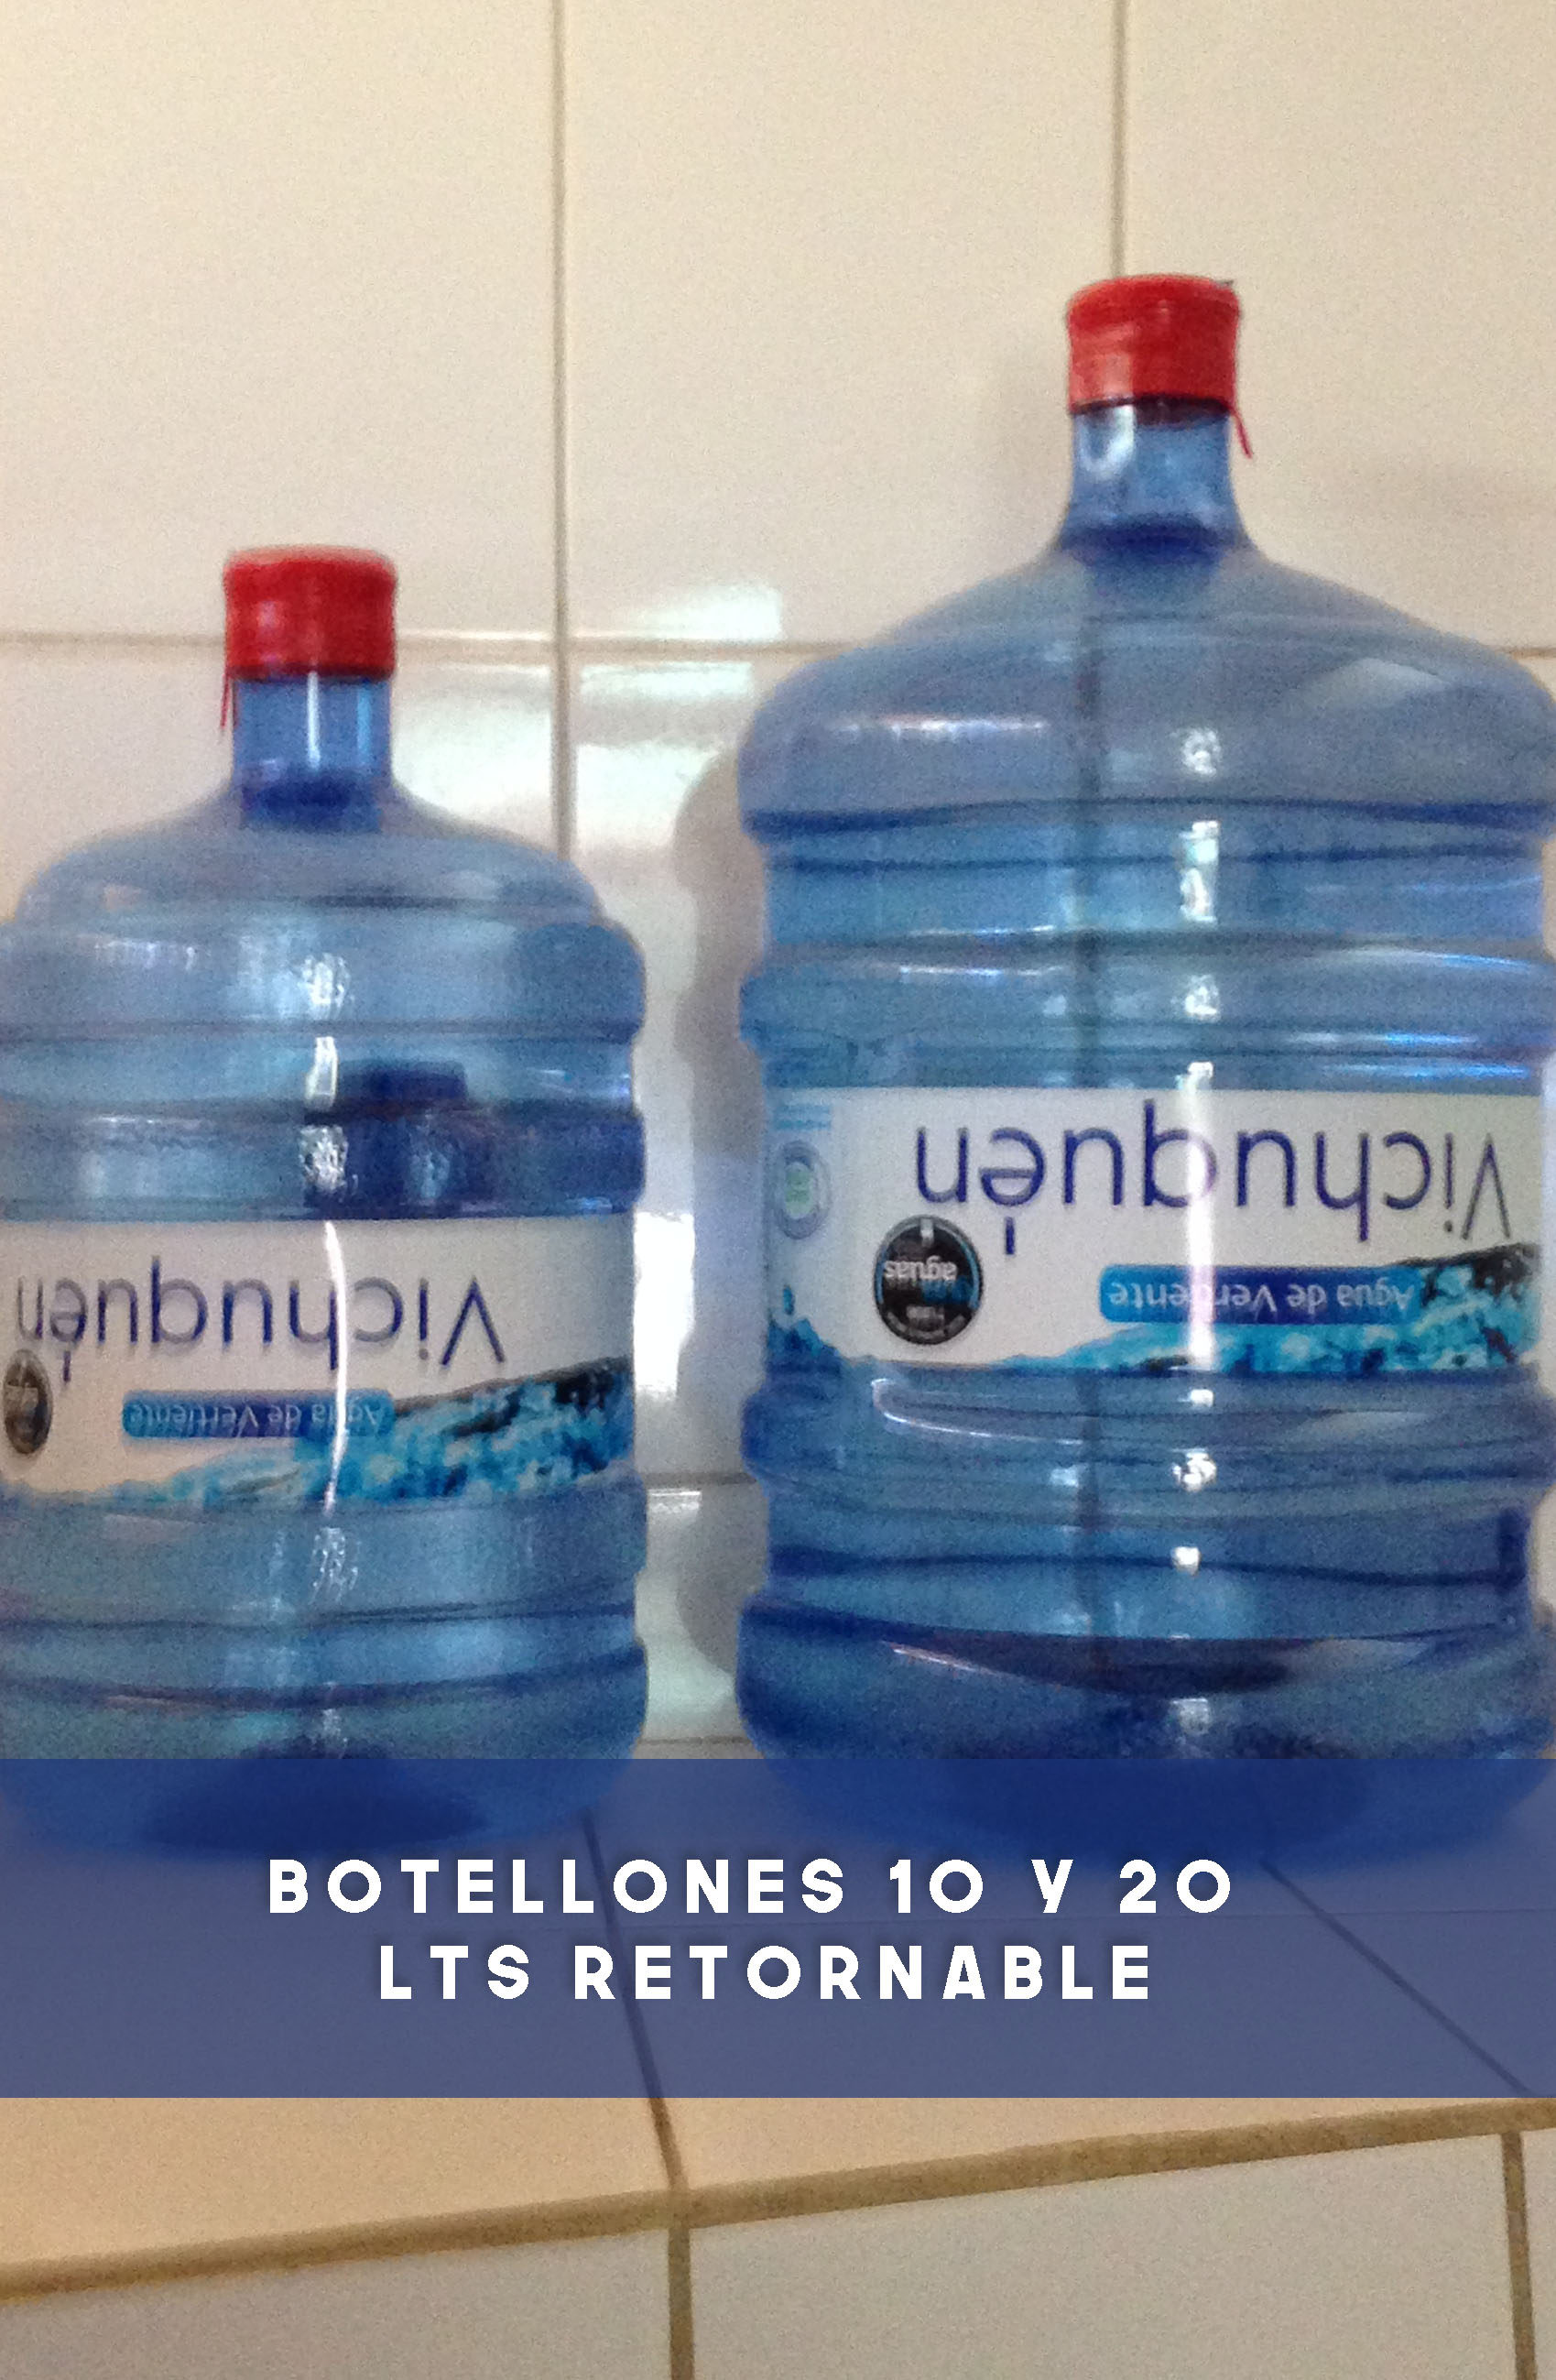 Botellones 10 y 20 Lts. Retornable